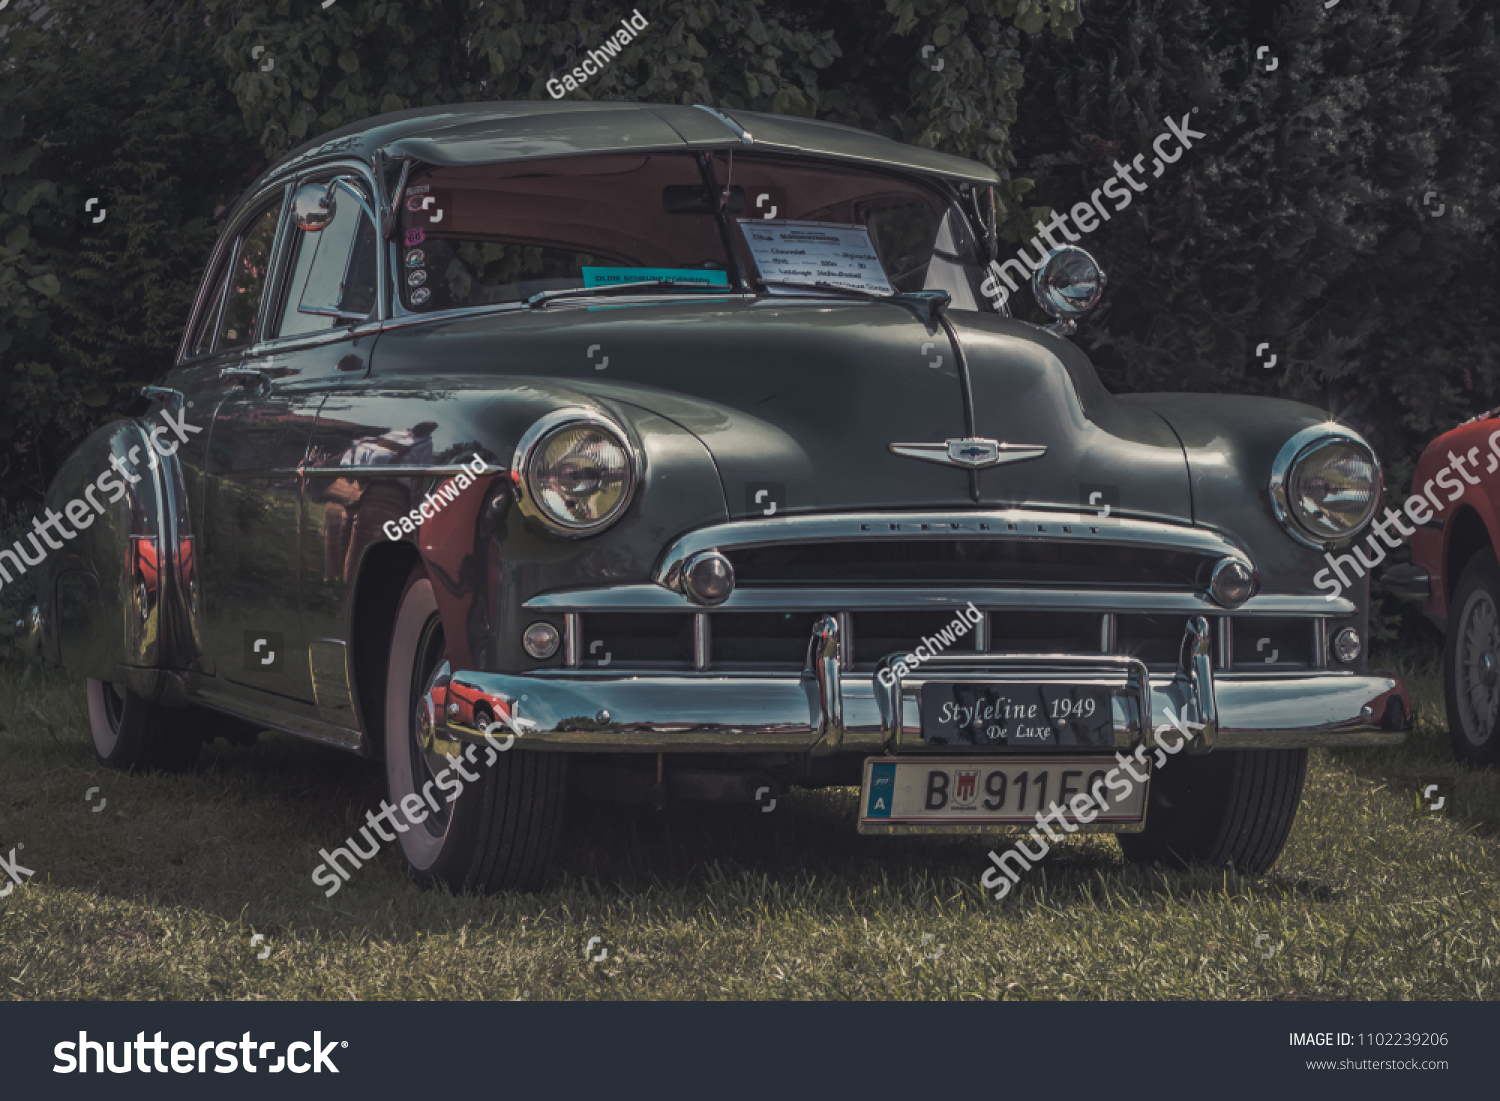 Hetzlinshofen Germany May 27 2018 1949 Stock Photo Edit Now Chevy Styleline Deluxe Chevrolet De Luxe At The